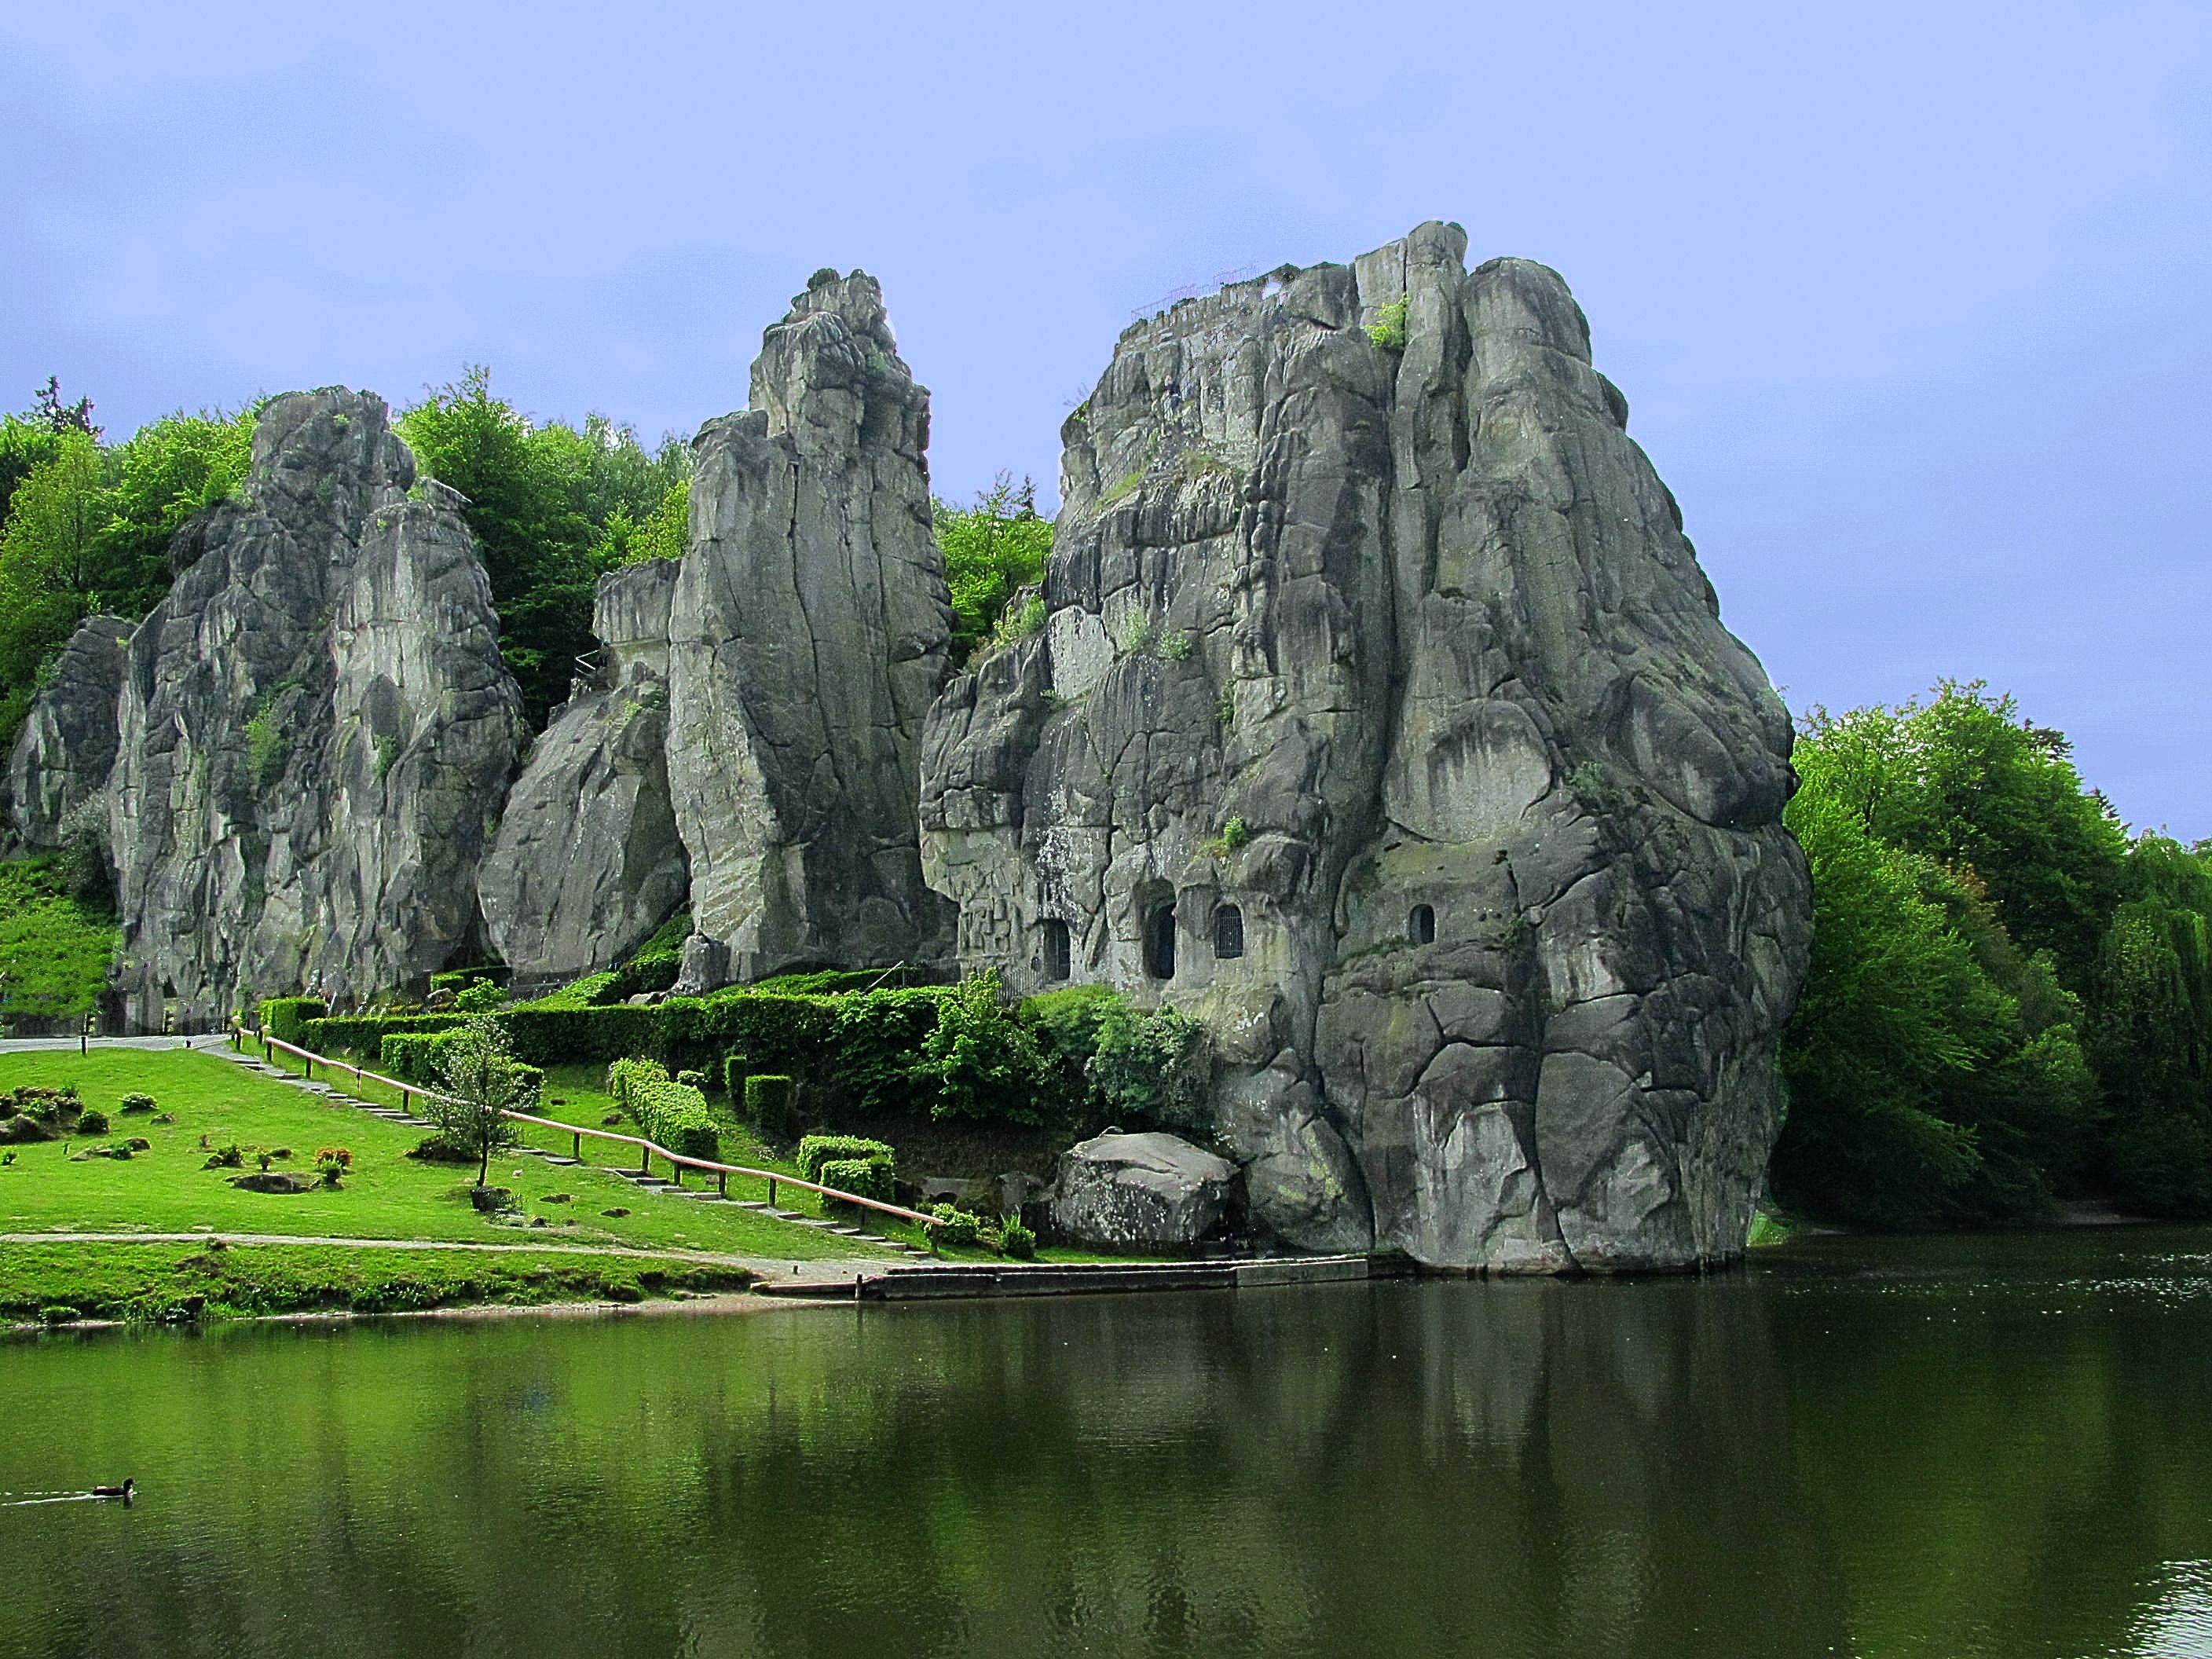 The Externsteine In Ostwestfalen Lippe Germany Not Far From The City Of Detmold At Horn Bad Meinberg Detmold